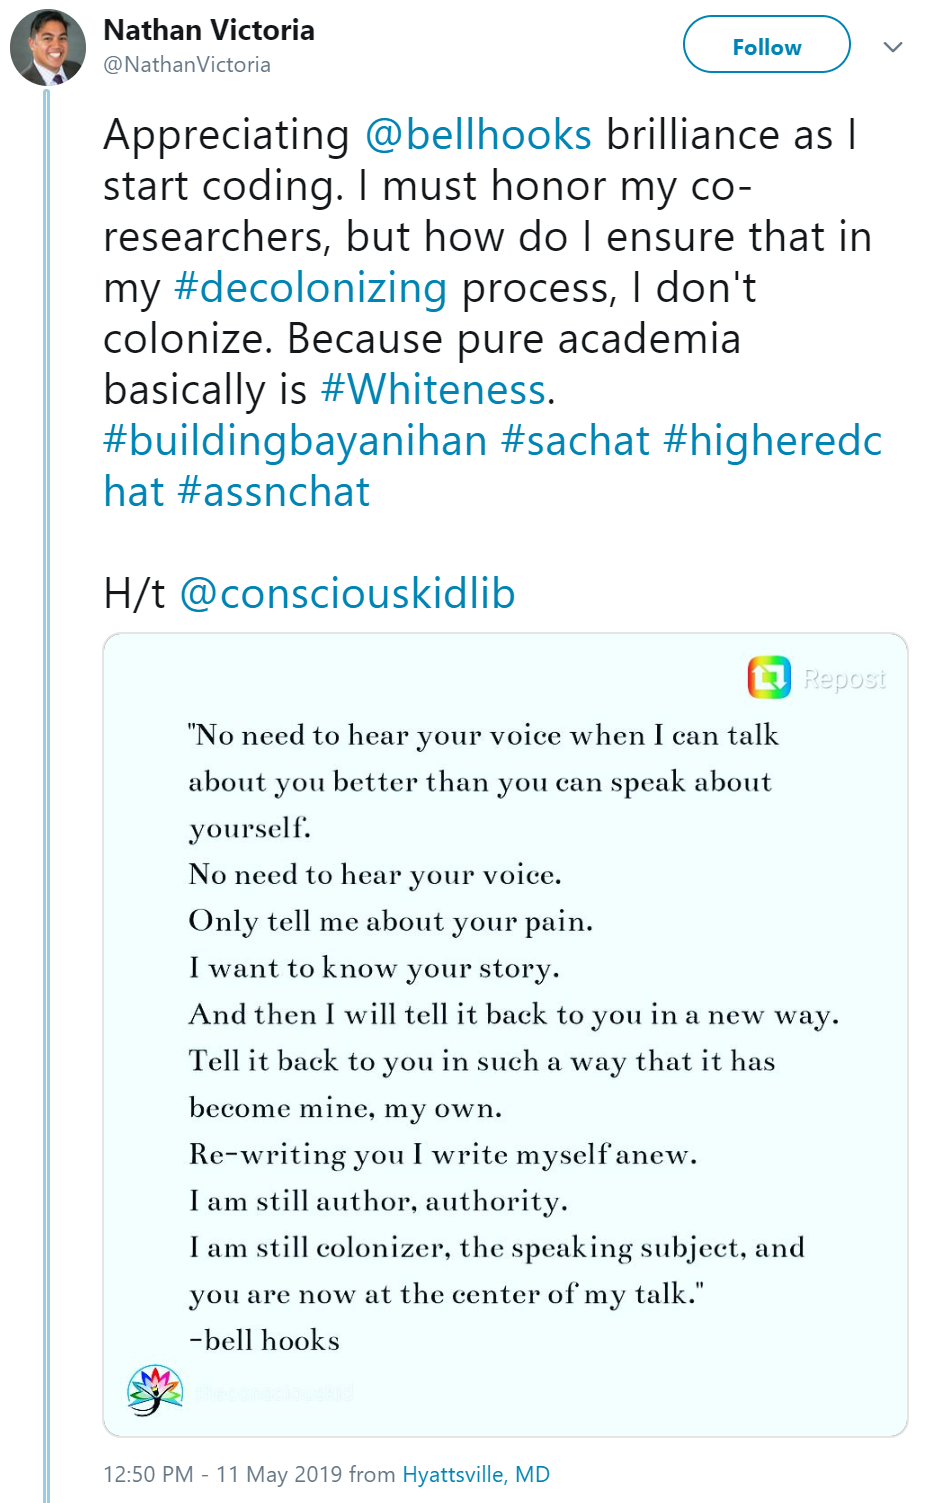 A tweet that states Appreciating @bellhooks brilliance as I start coding. I must honor my co-researchers, but how do I ensure that in my #decolonizing process, I don't colonize. Because pure academia basically is #Whiteness.  #buildingbayanihan #sachat #higheredchat #assnchat  H/t @consciouskidlib. The picture with the tweet states: o need to hear your voice when I can talk about you better than you can speak about yourself. No need to hear your voice. Only tell me about your pain. I want to know your story. And then I will tell it back to you in a new way. Tell it back to you in such a way that it has become mine, my own. Re-writing you I write myself anew. I am still author, authority. I am still colonizer, the speaking subject, and you are now at the center of my talk.